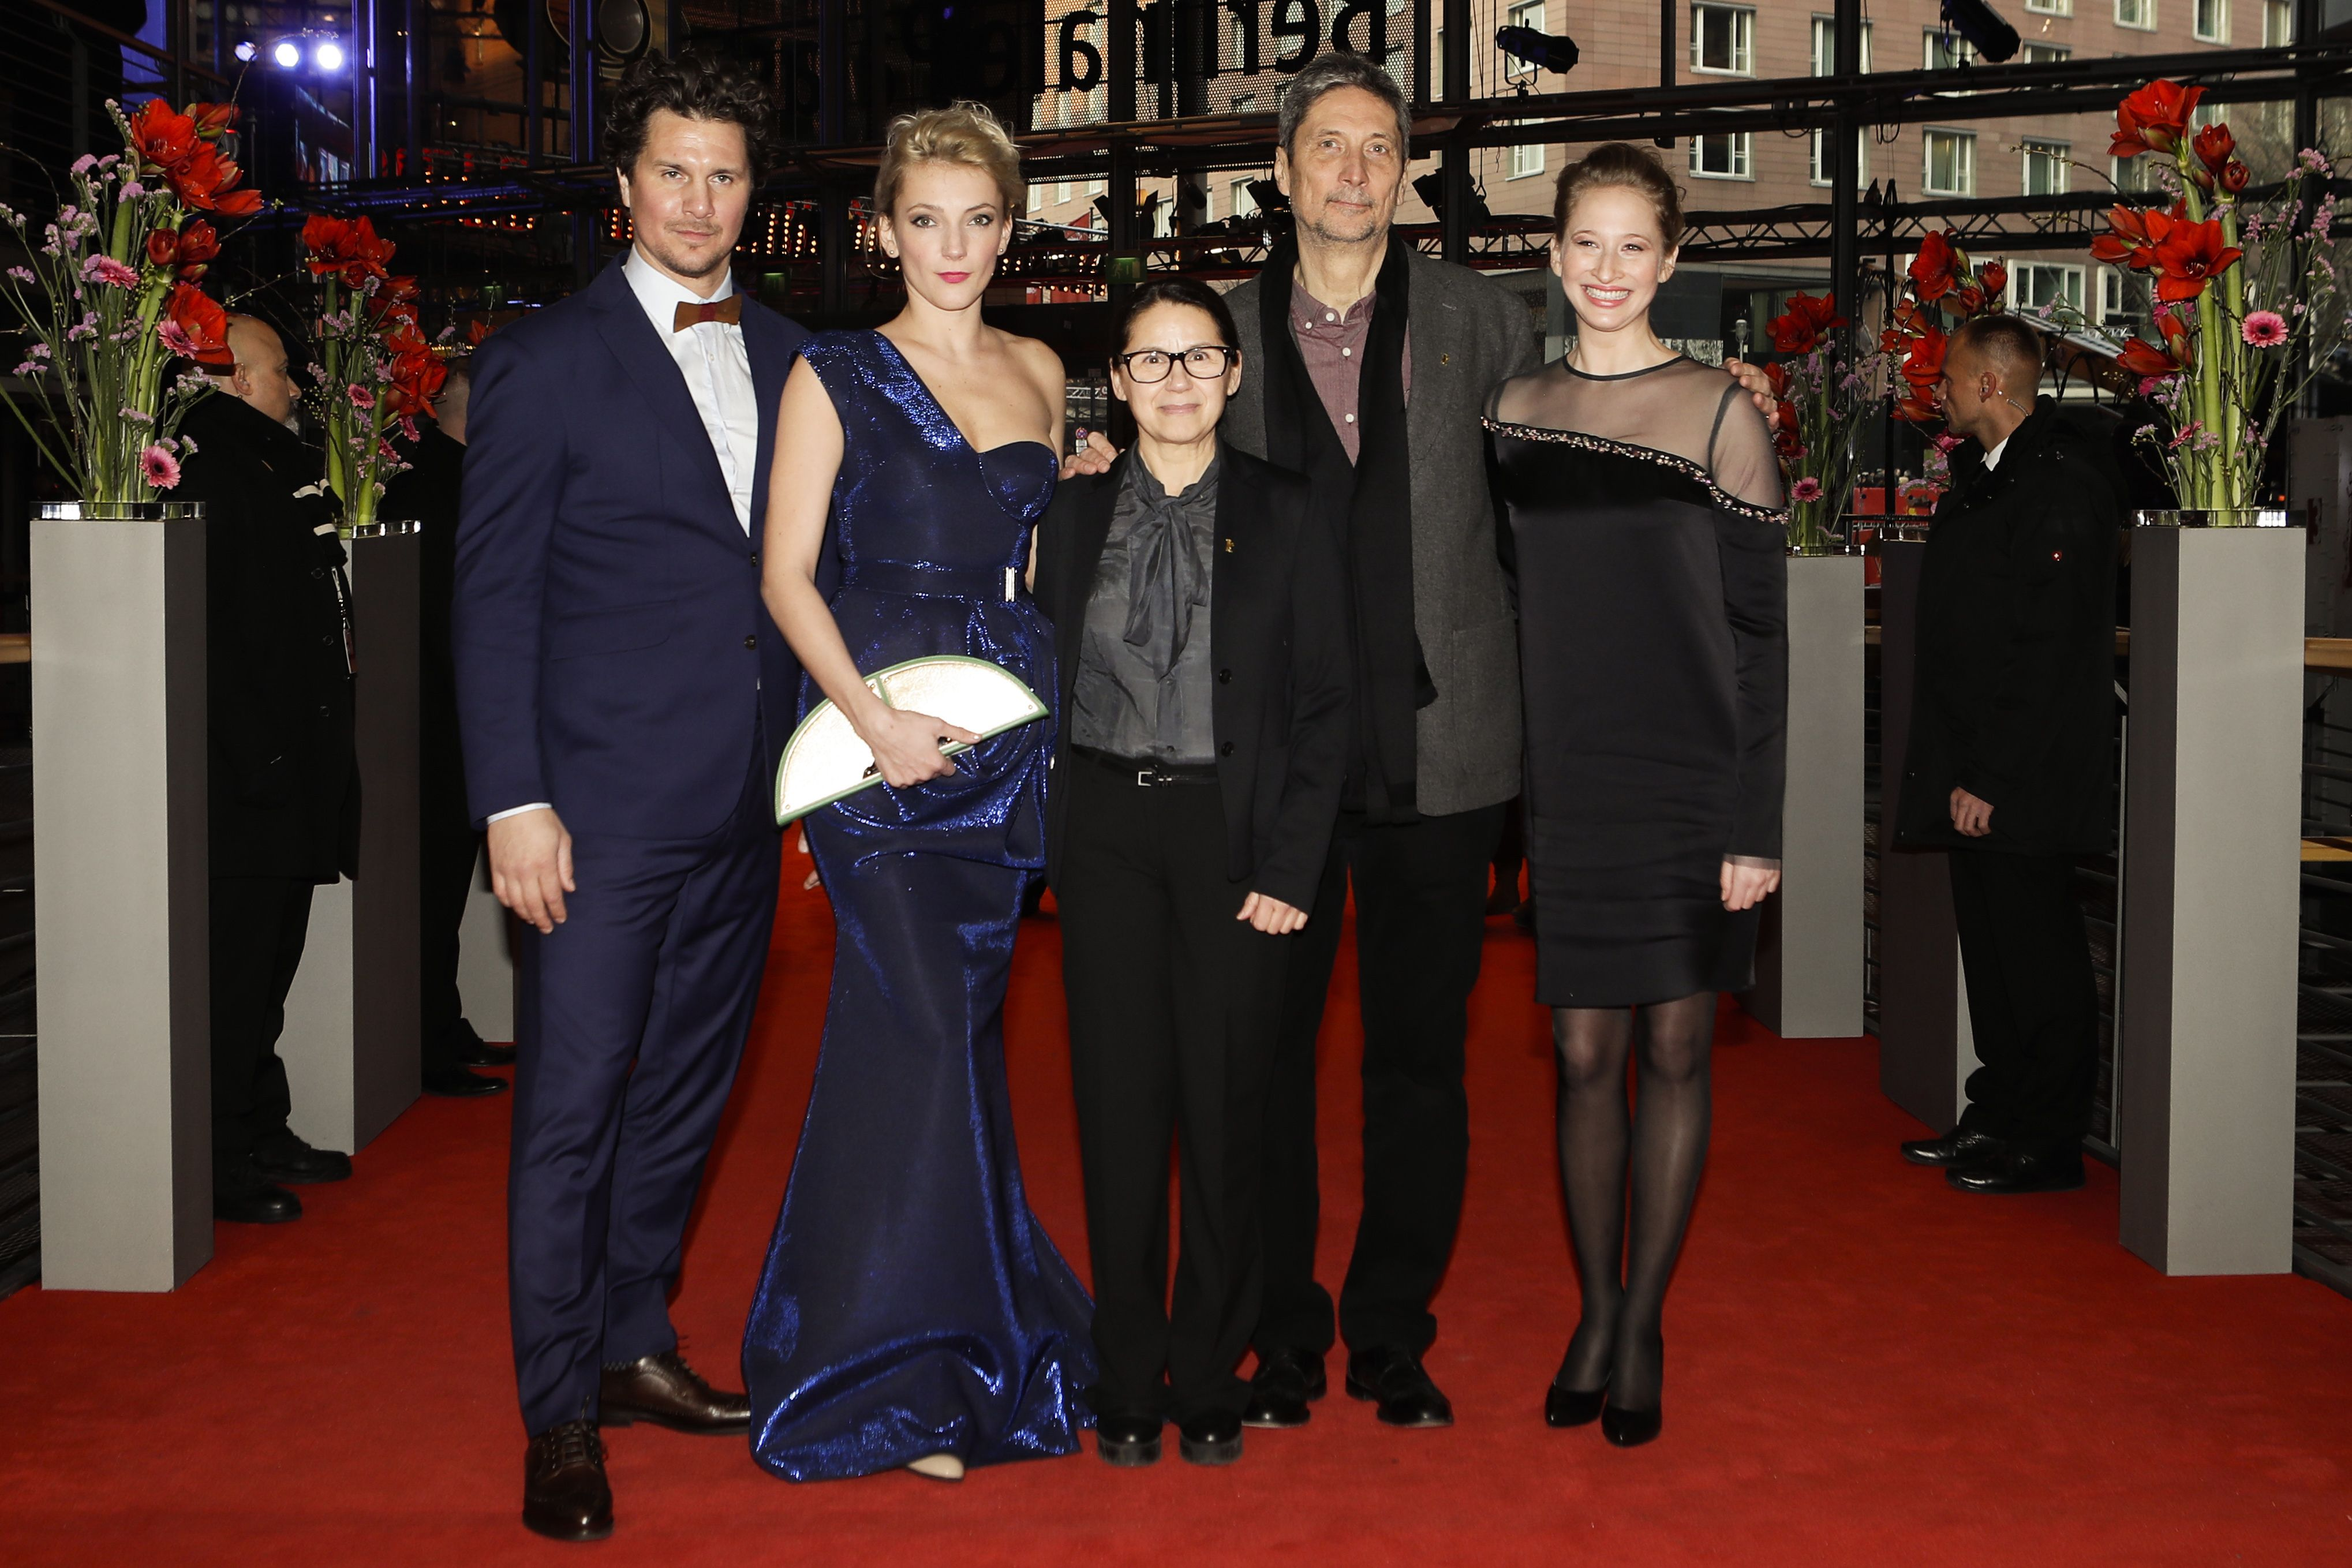 From left the actors Ervin Nagy, Alexandra Borbely, director Ildiko Enyedi and the actors Geza Morcsanyi and Reka Tenki arrive on the red carpet for the film 'On Body and Soul' at the 2017 Berlinale Film Festival in Berlin, GermanyFilm Festival 2017, Berlin, Germany - 10 Feb 2017